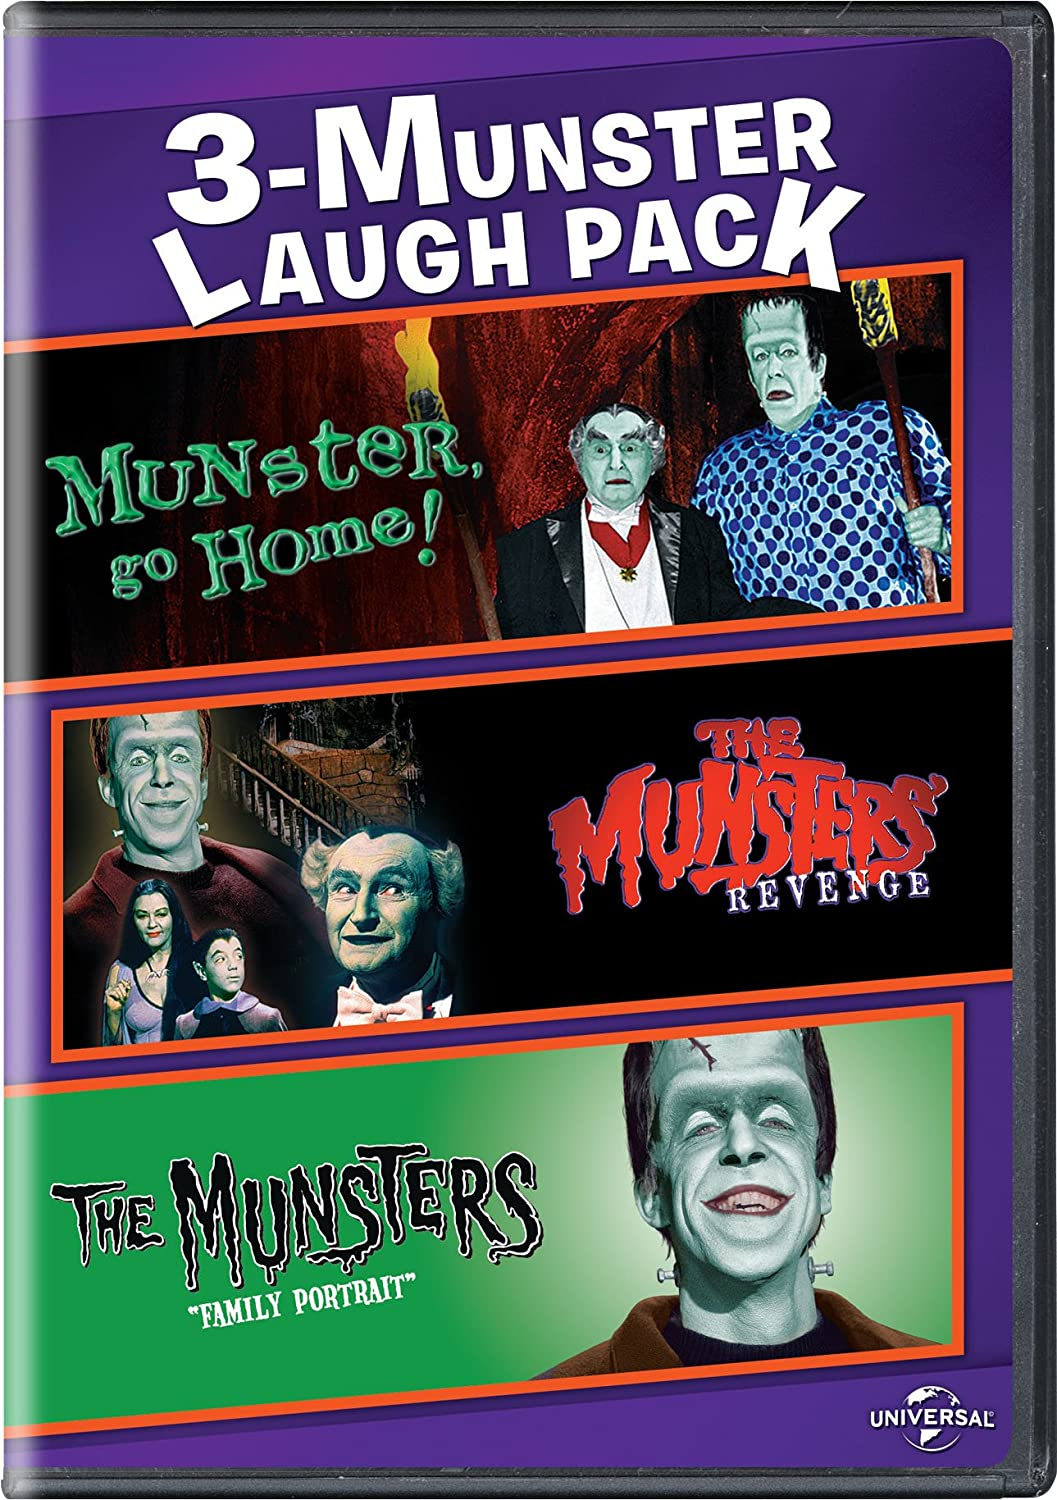 Munster, Go Home! / The Munsters' Revenge / The Munsters: Family Portrait 3-Munster Laugh Pack